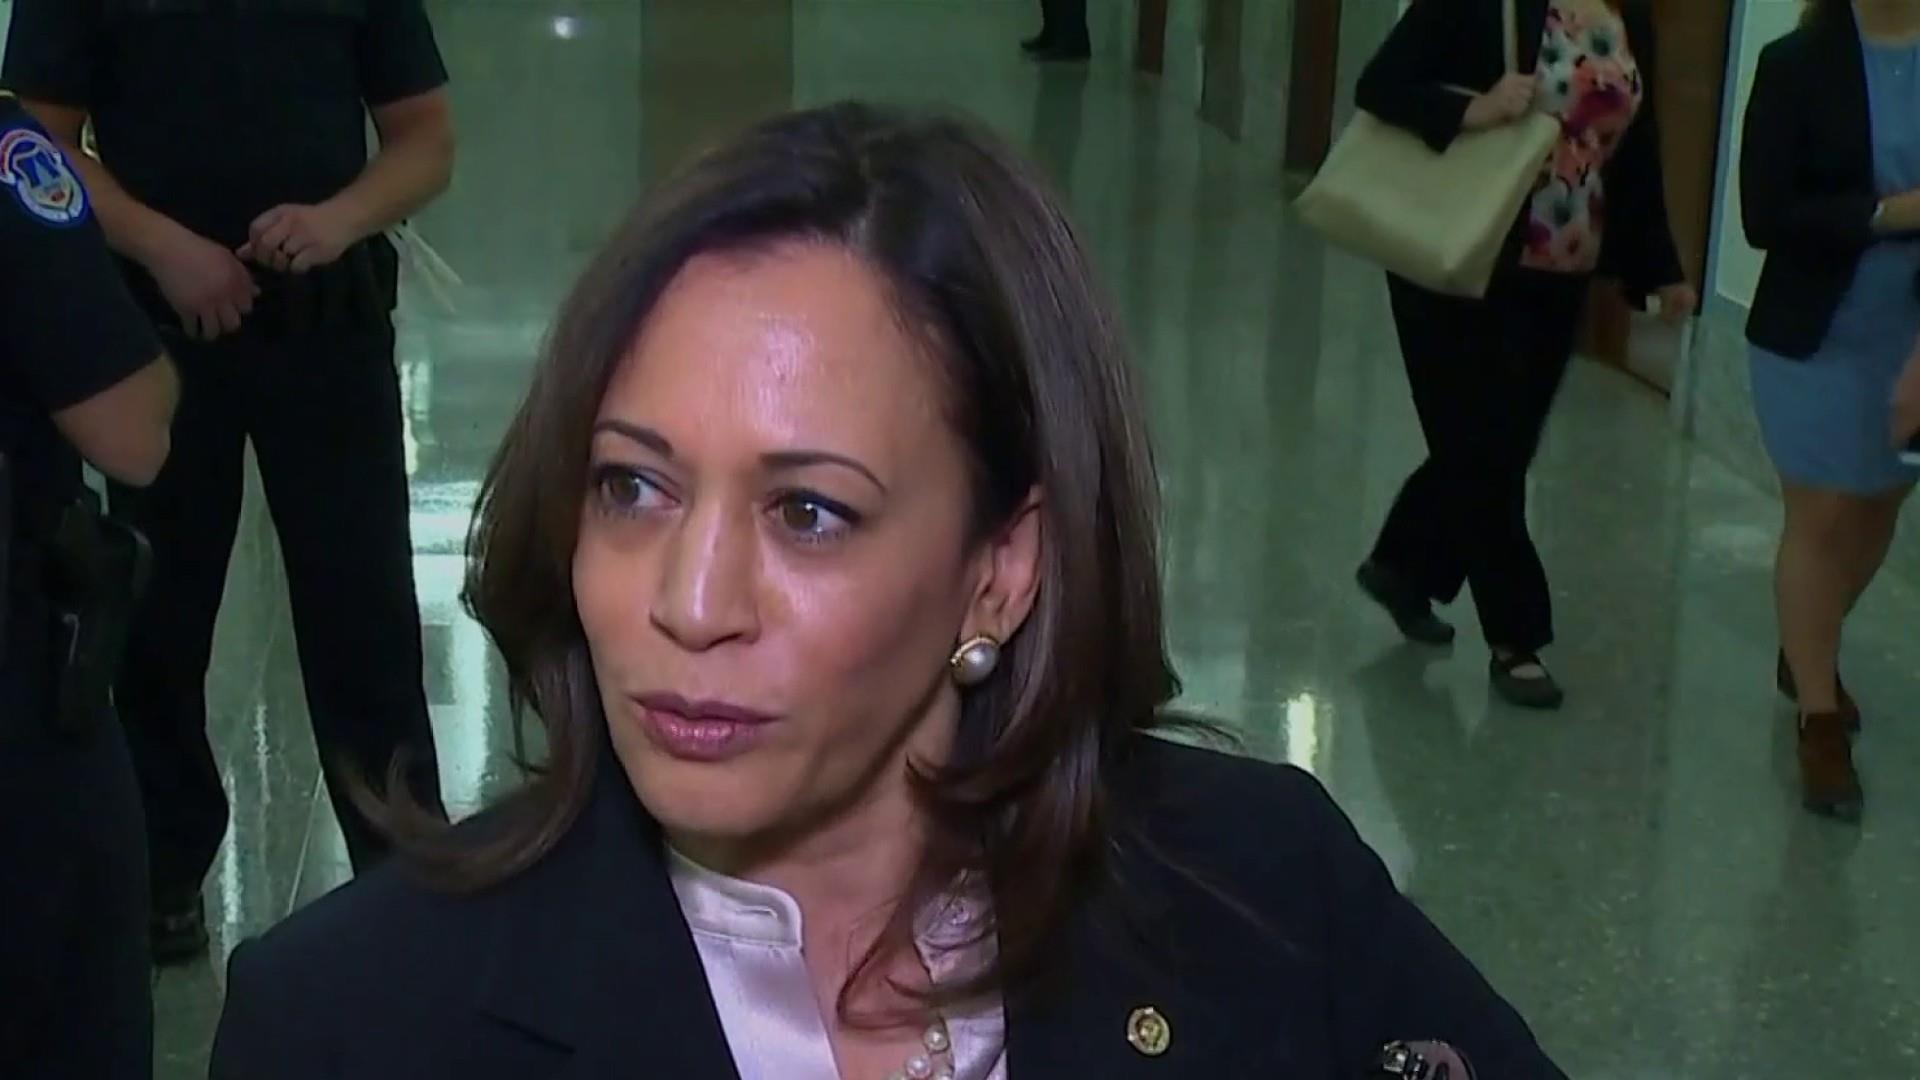 After testimony, Sen. Harris says AG Barr lacks all credibility and must resign